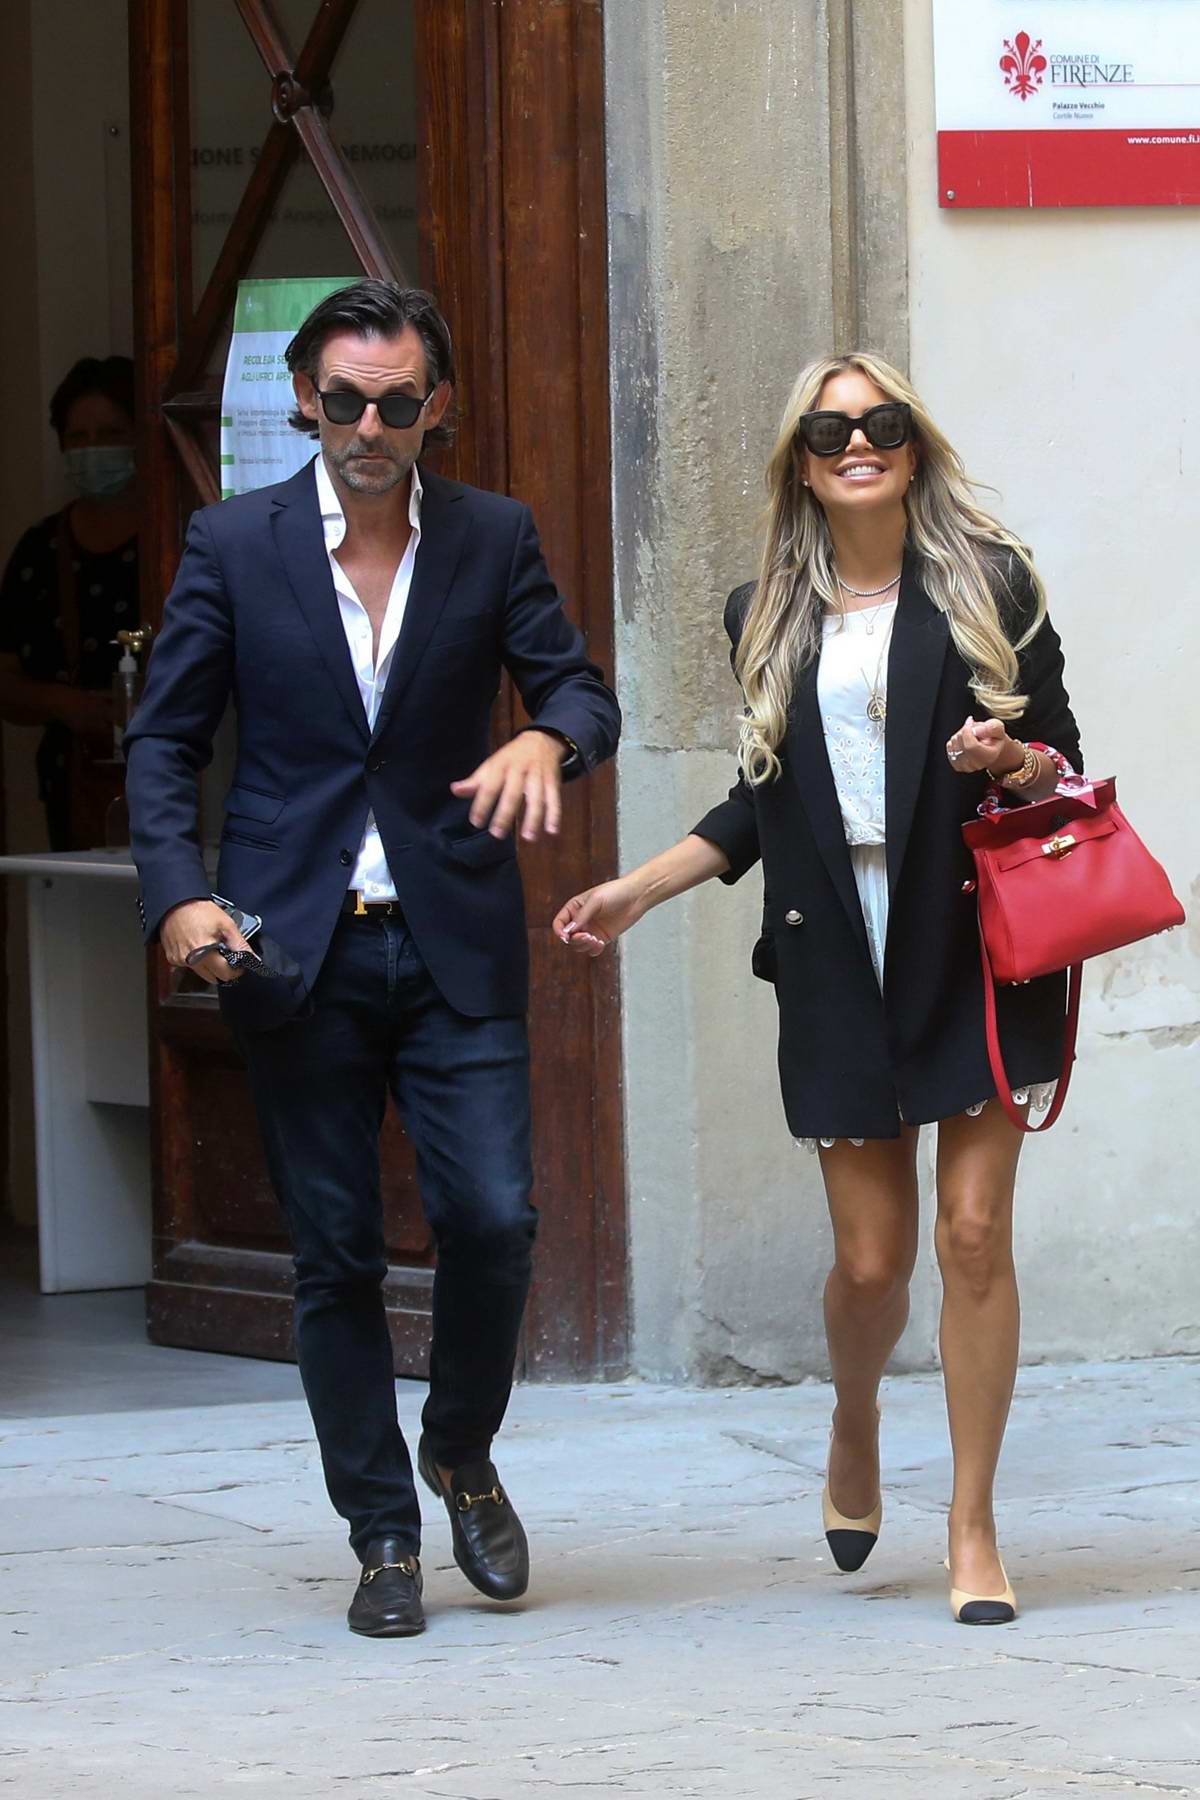 Sylvie Meis and Niclas Castello enjoy a pre-wedding party with friends and family in Florence, Italy